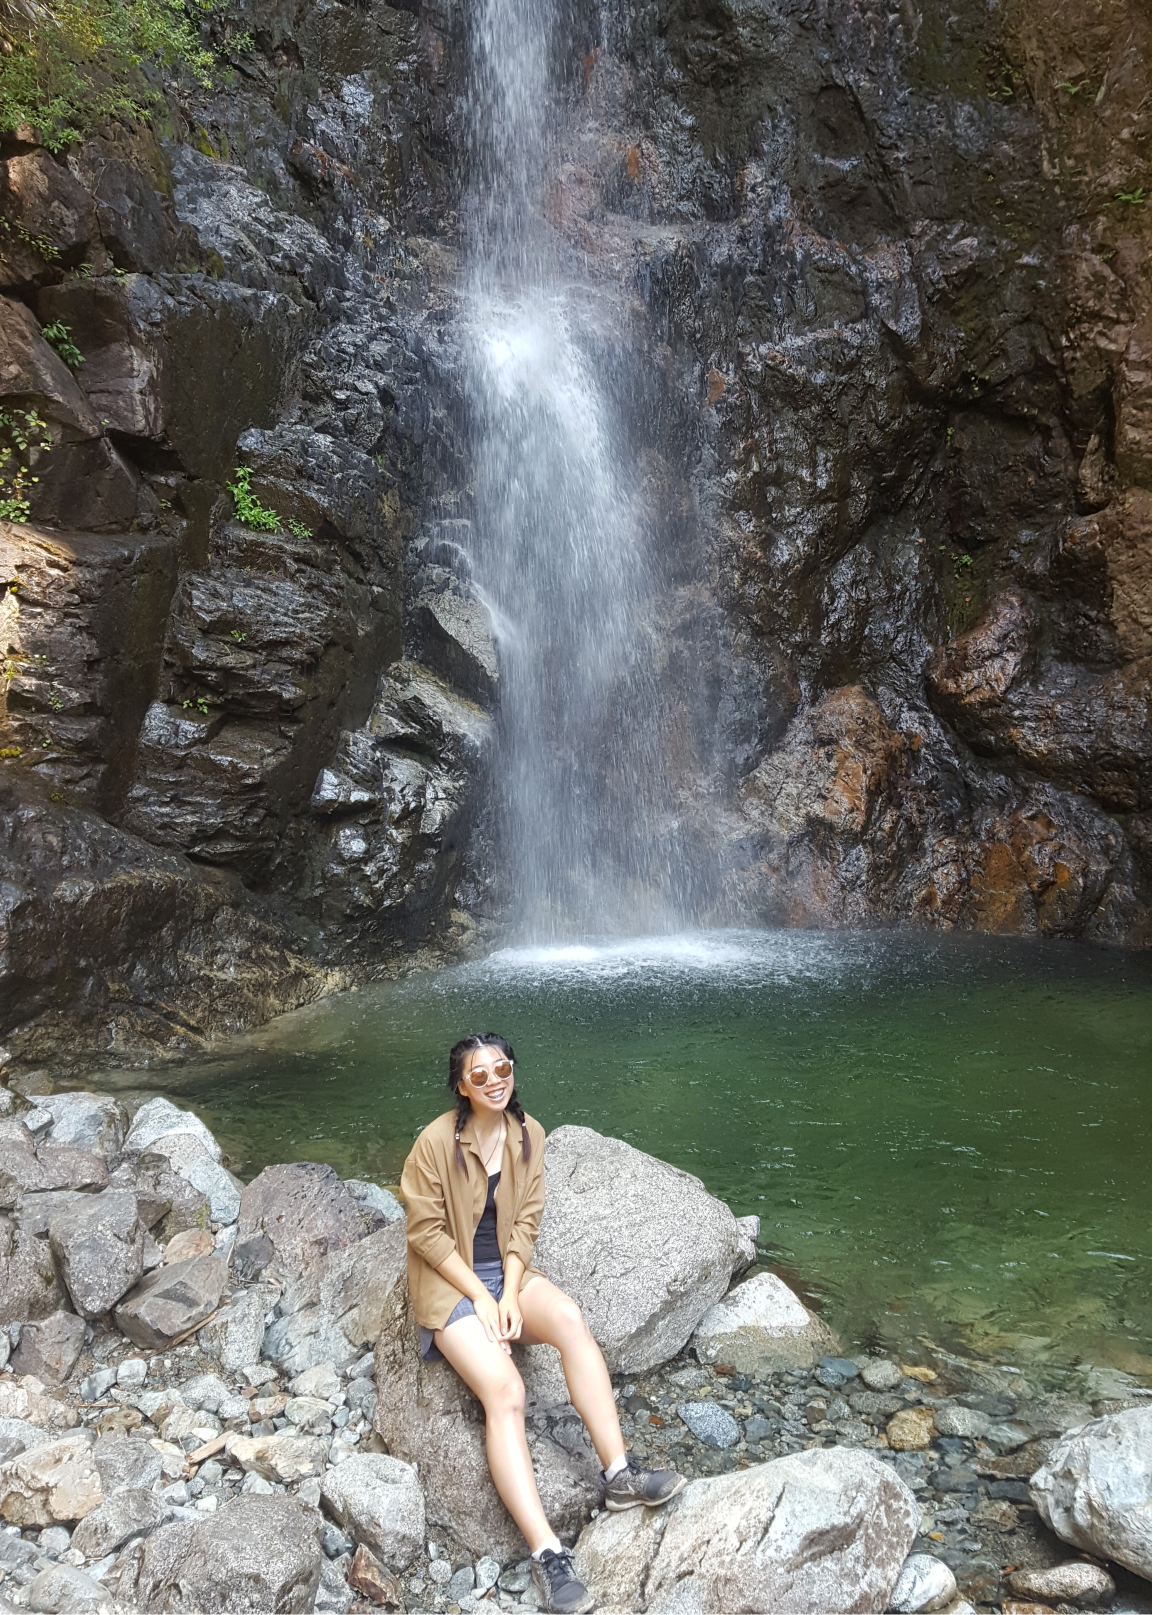 A photo of myself sitting on a rock by a waterfall.